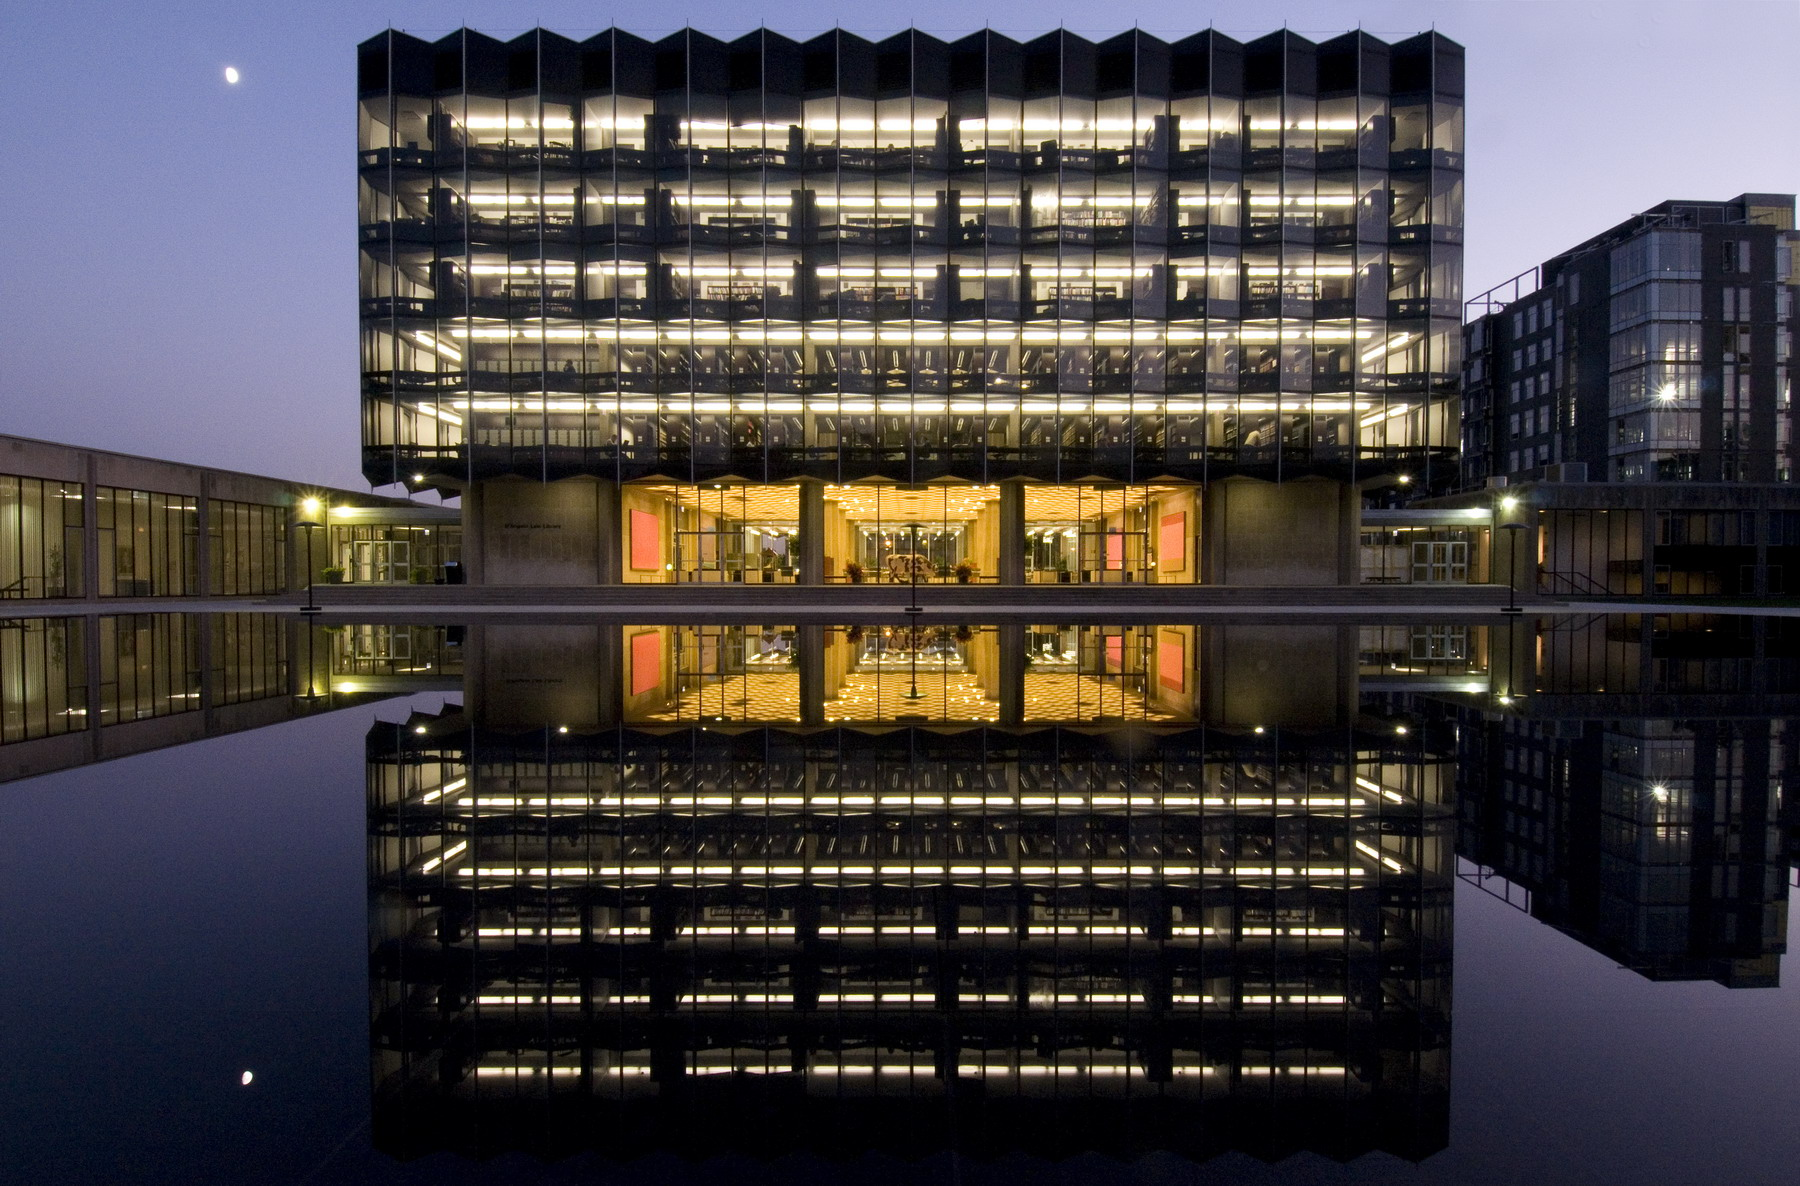 Photo of D'Angelo Law Library at night